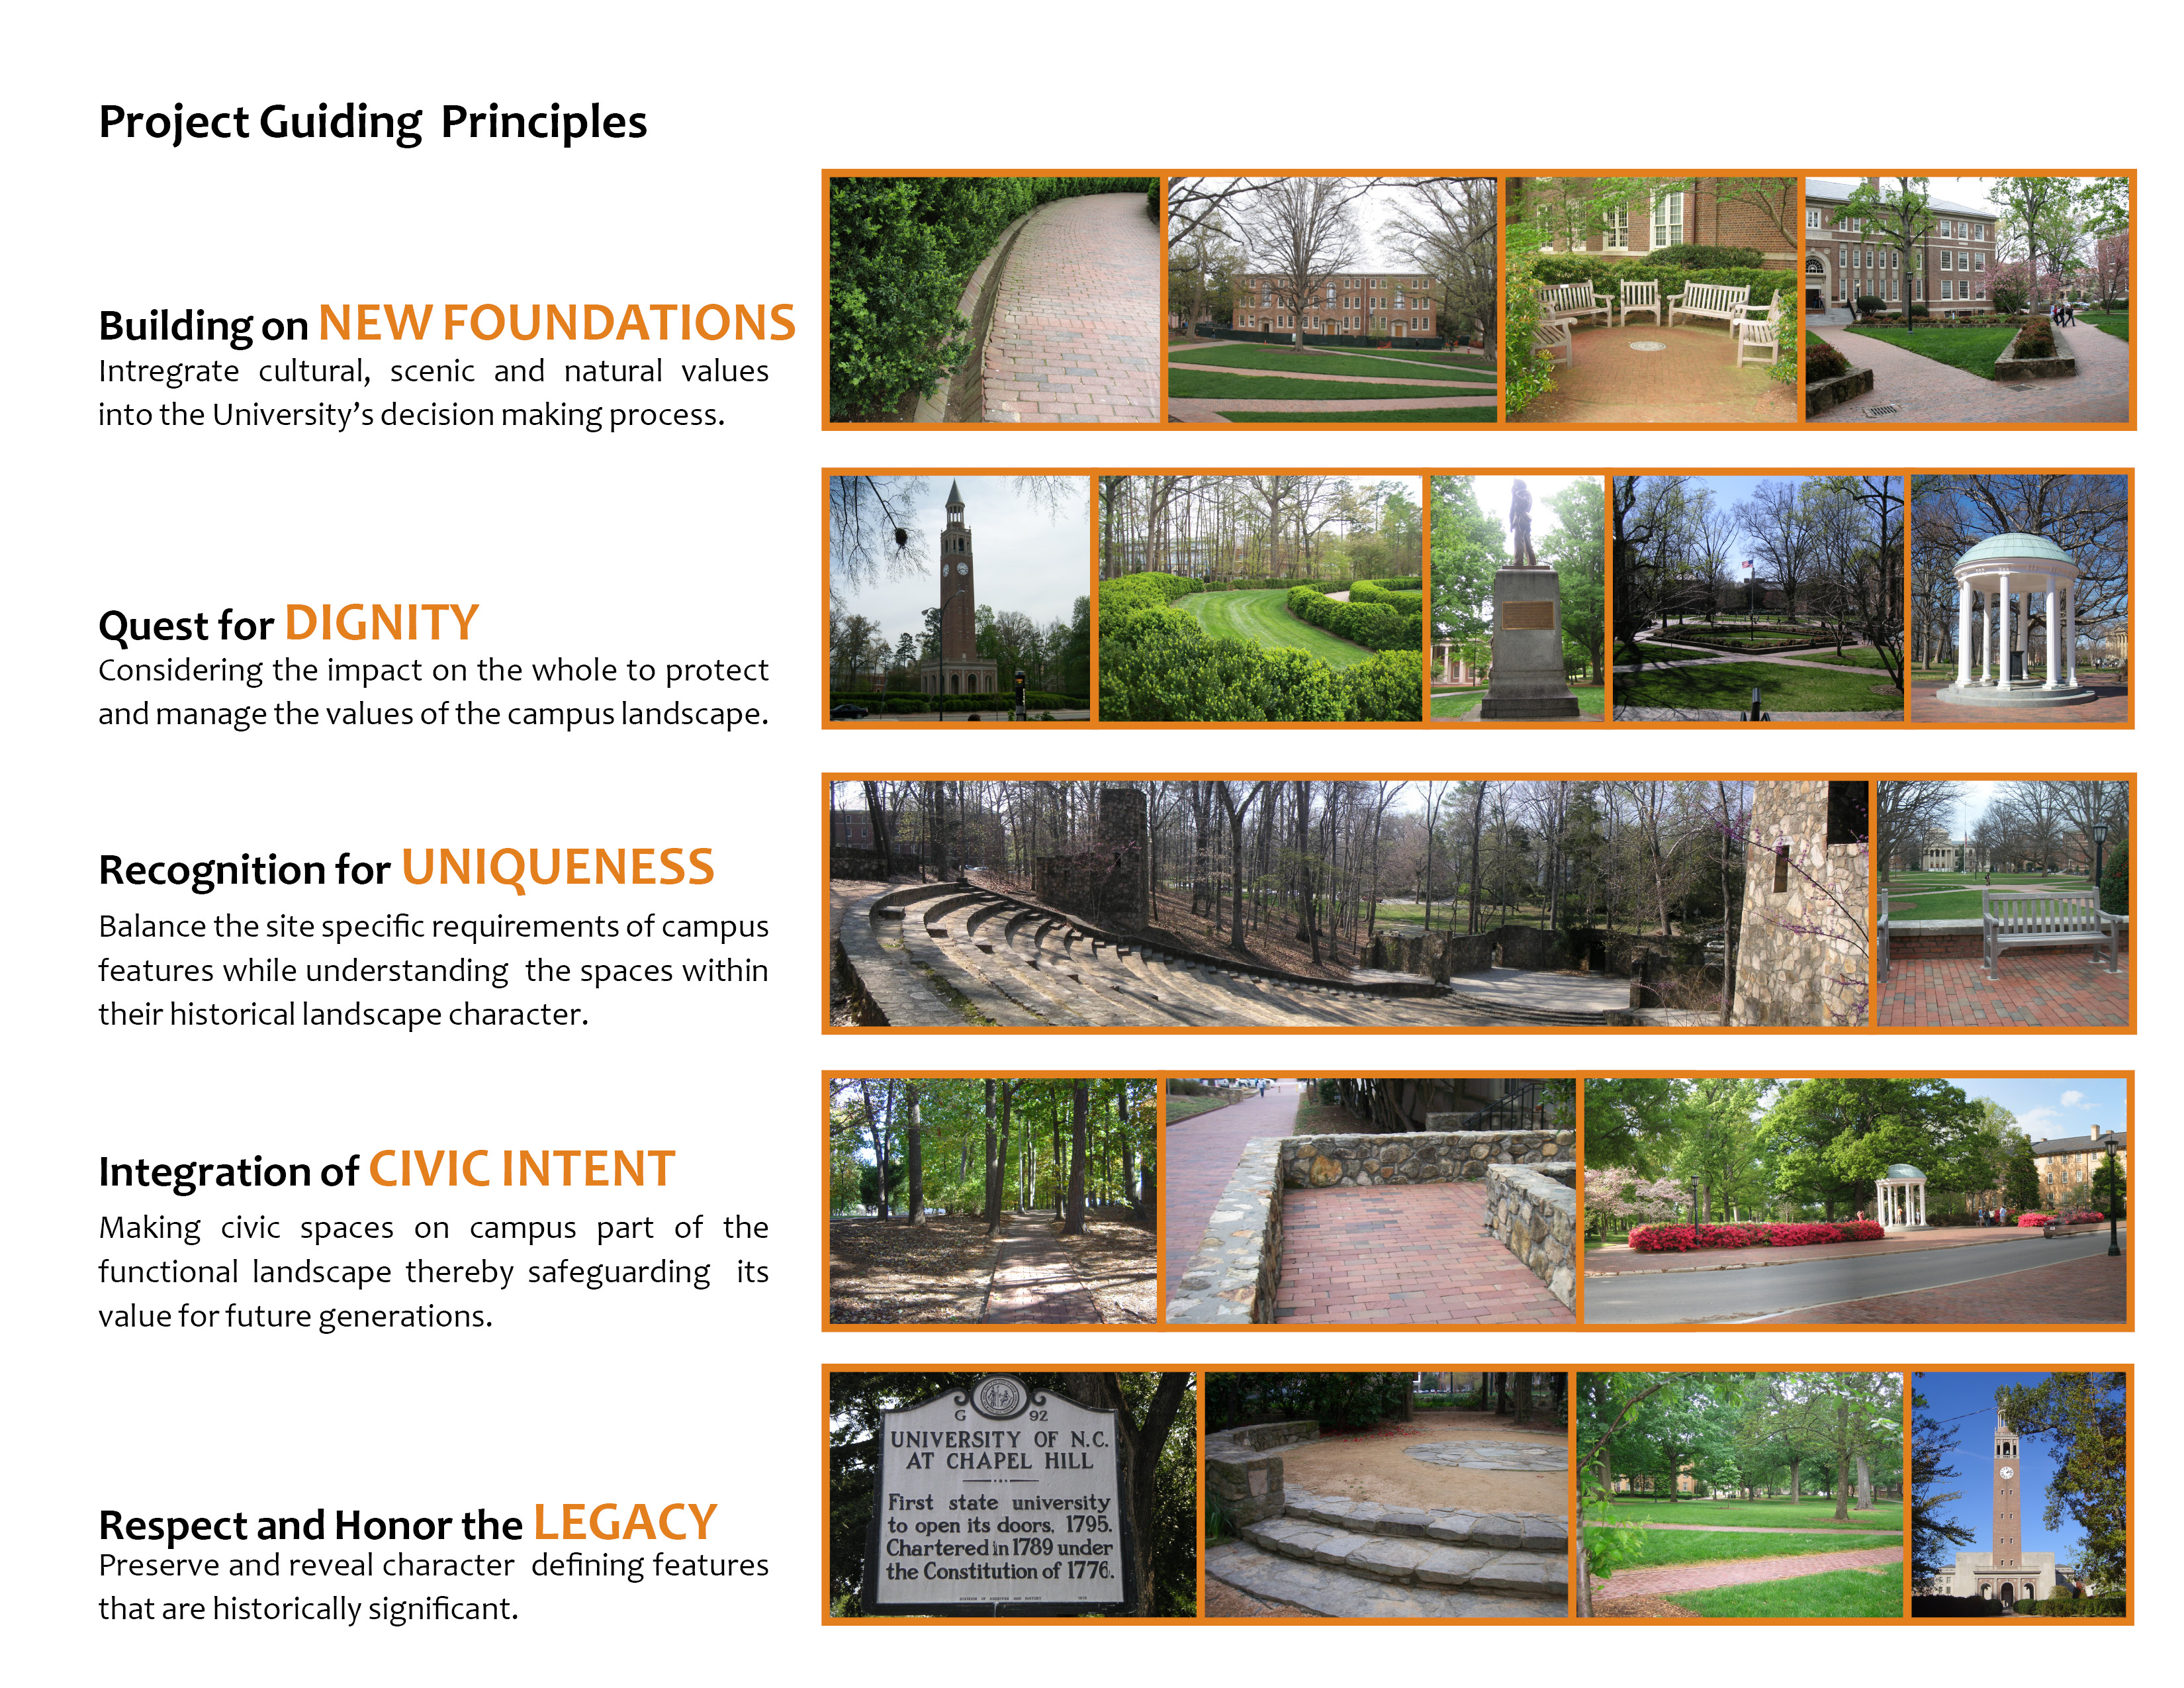 Asla 2011 professional awards dignity of restraint a for Garden design principles